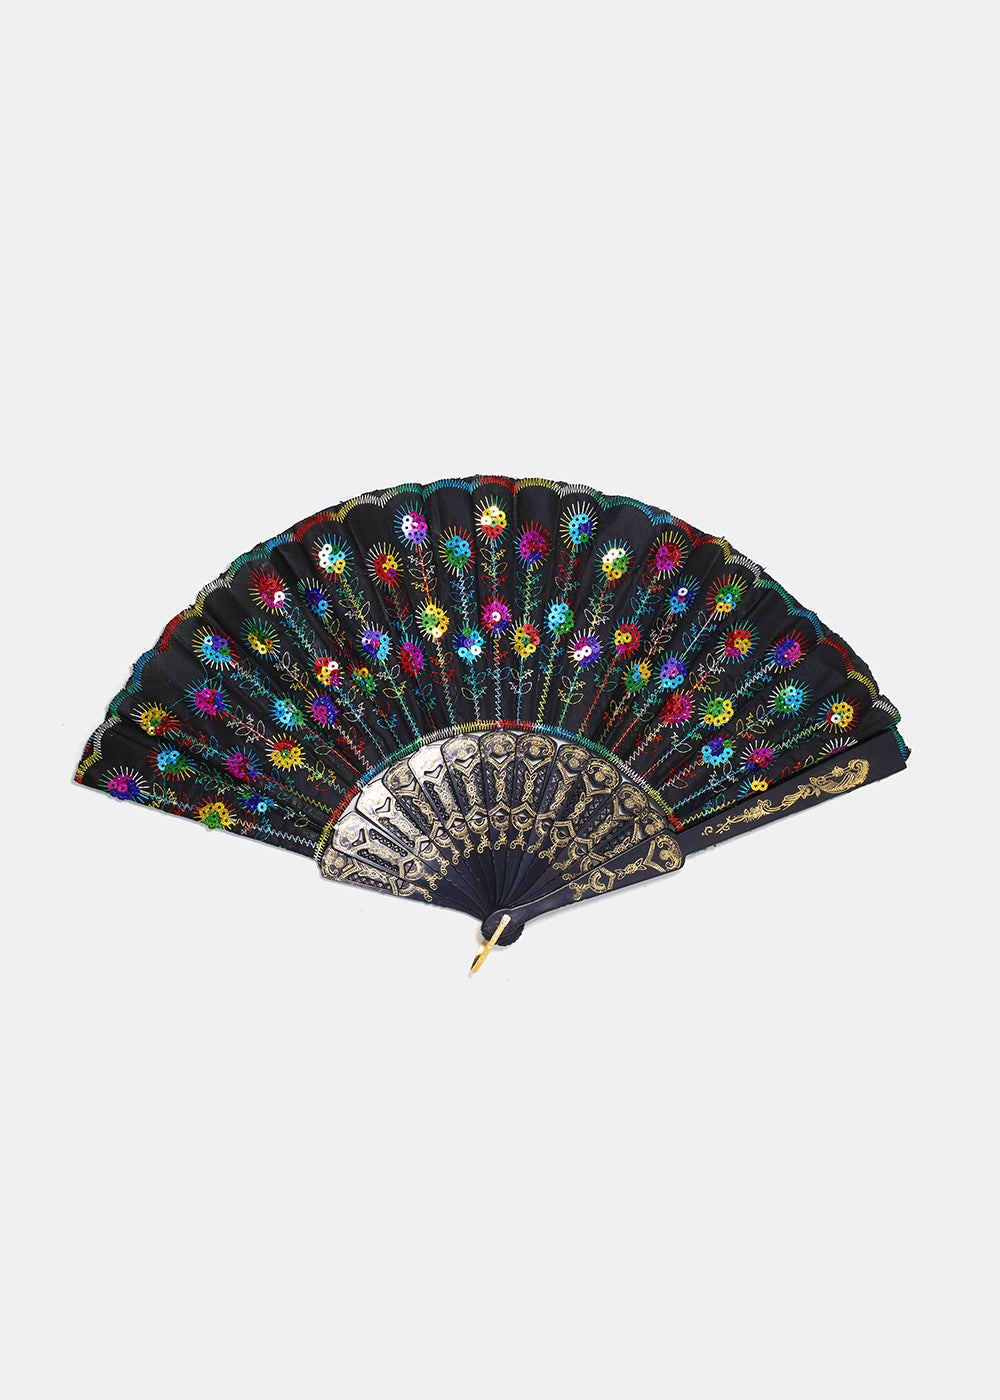 Sequin Flower Stich Folding Fan